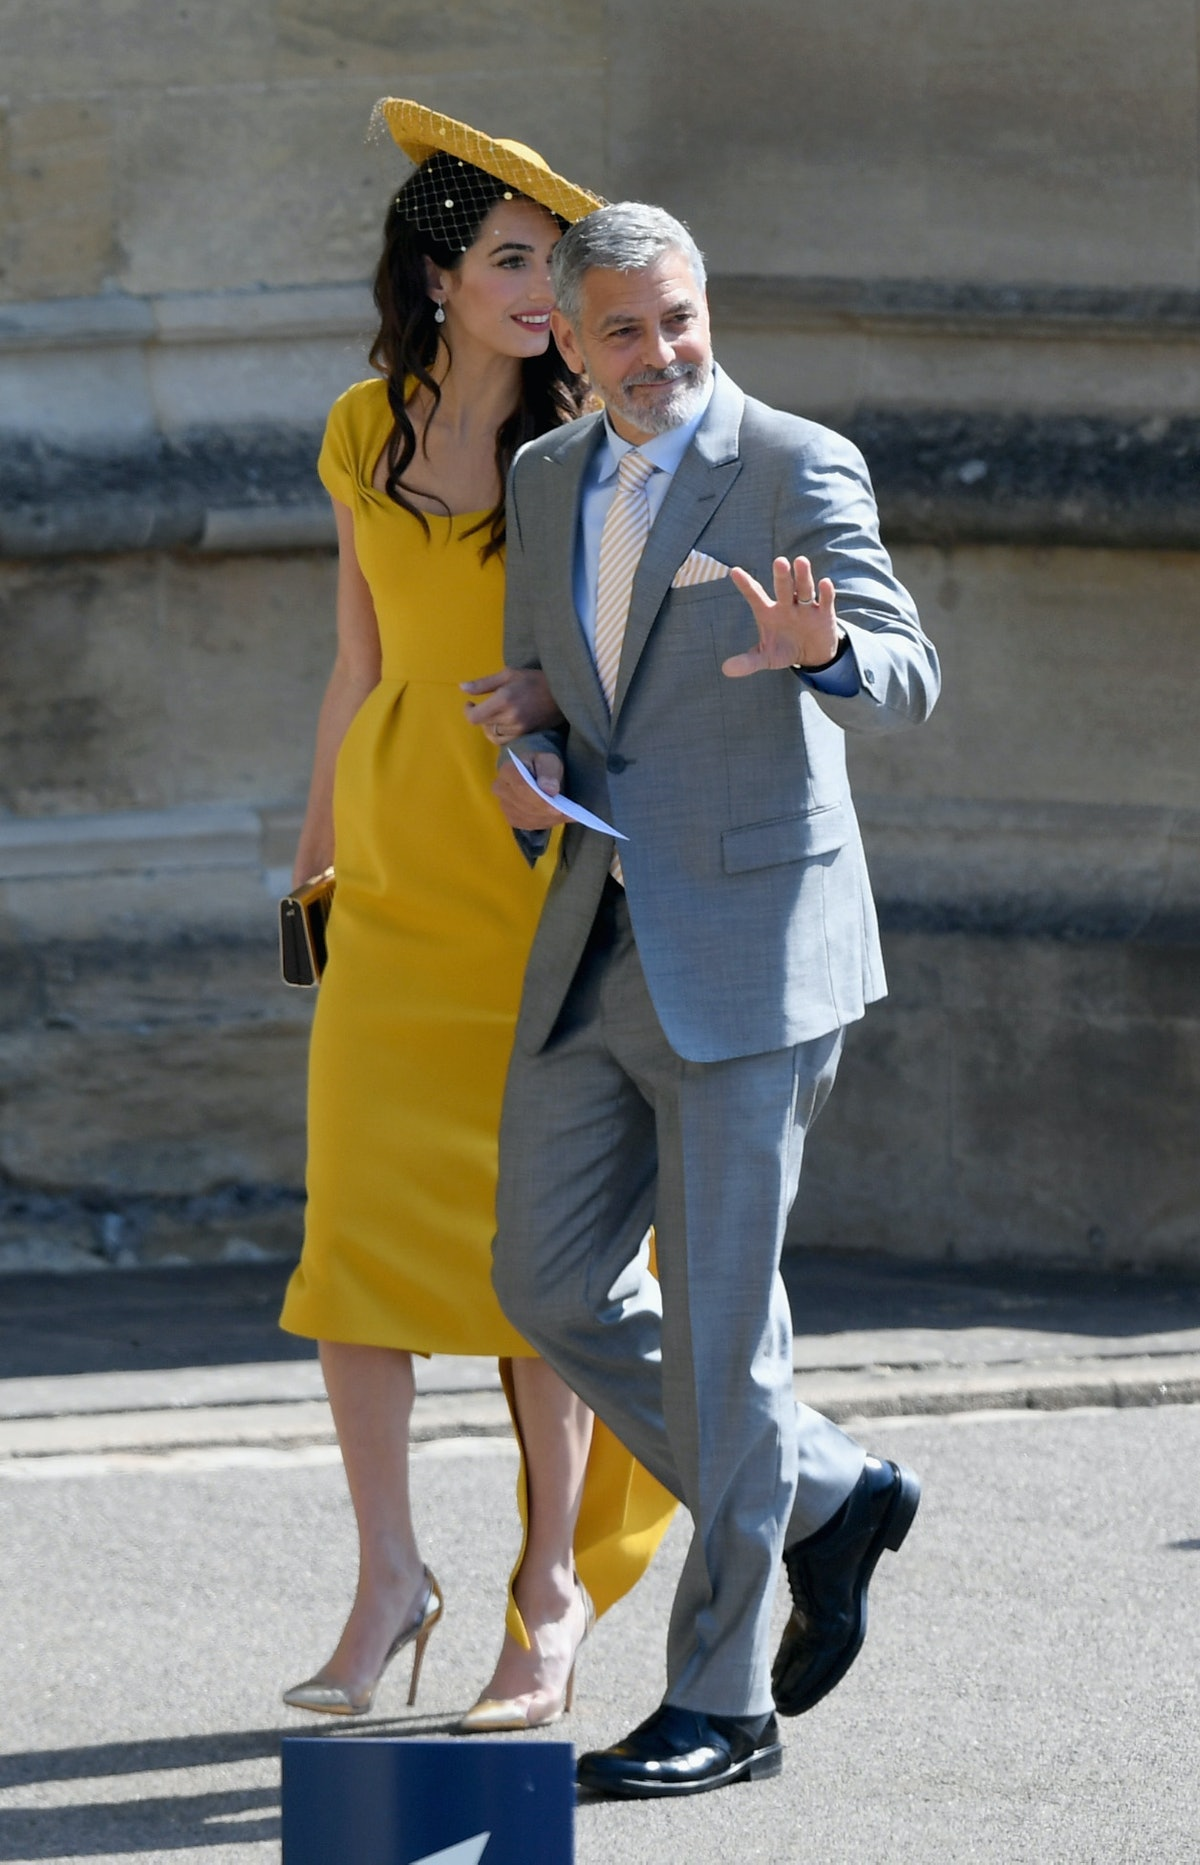 Amal Clooney in a yellow gown and hat, George Clooney in a gray suit